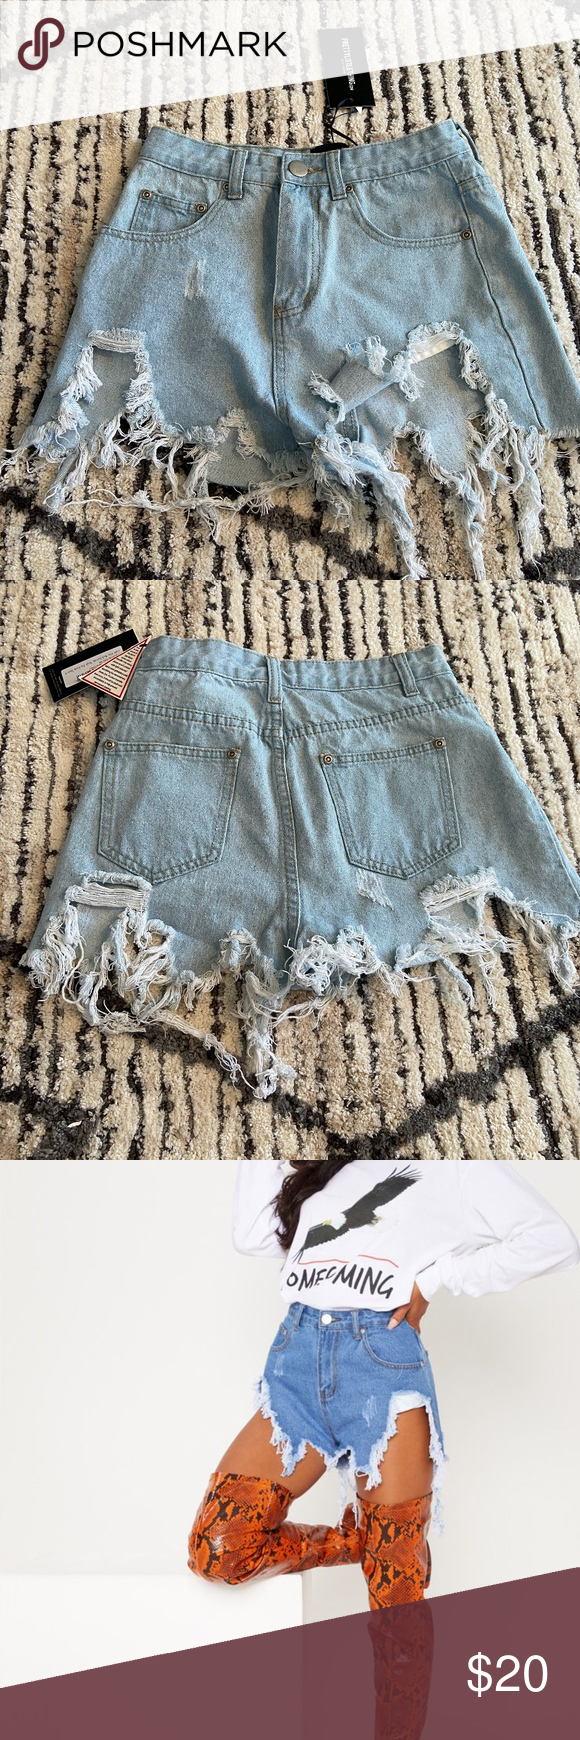 Light Blue Wash Ripped Denim Shorts High waisted shorts. Brand new  UK Size 6 US Size 2 PrettyLittleThing Shorts Jean Shorts #lightblueshorts